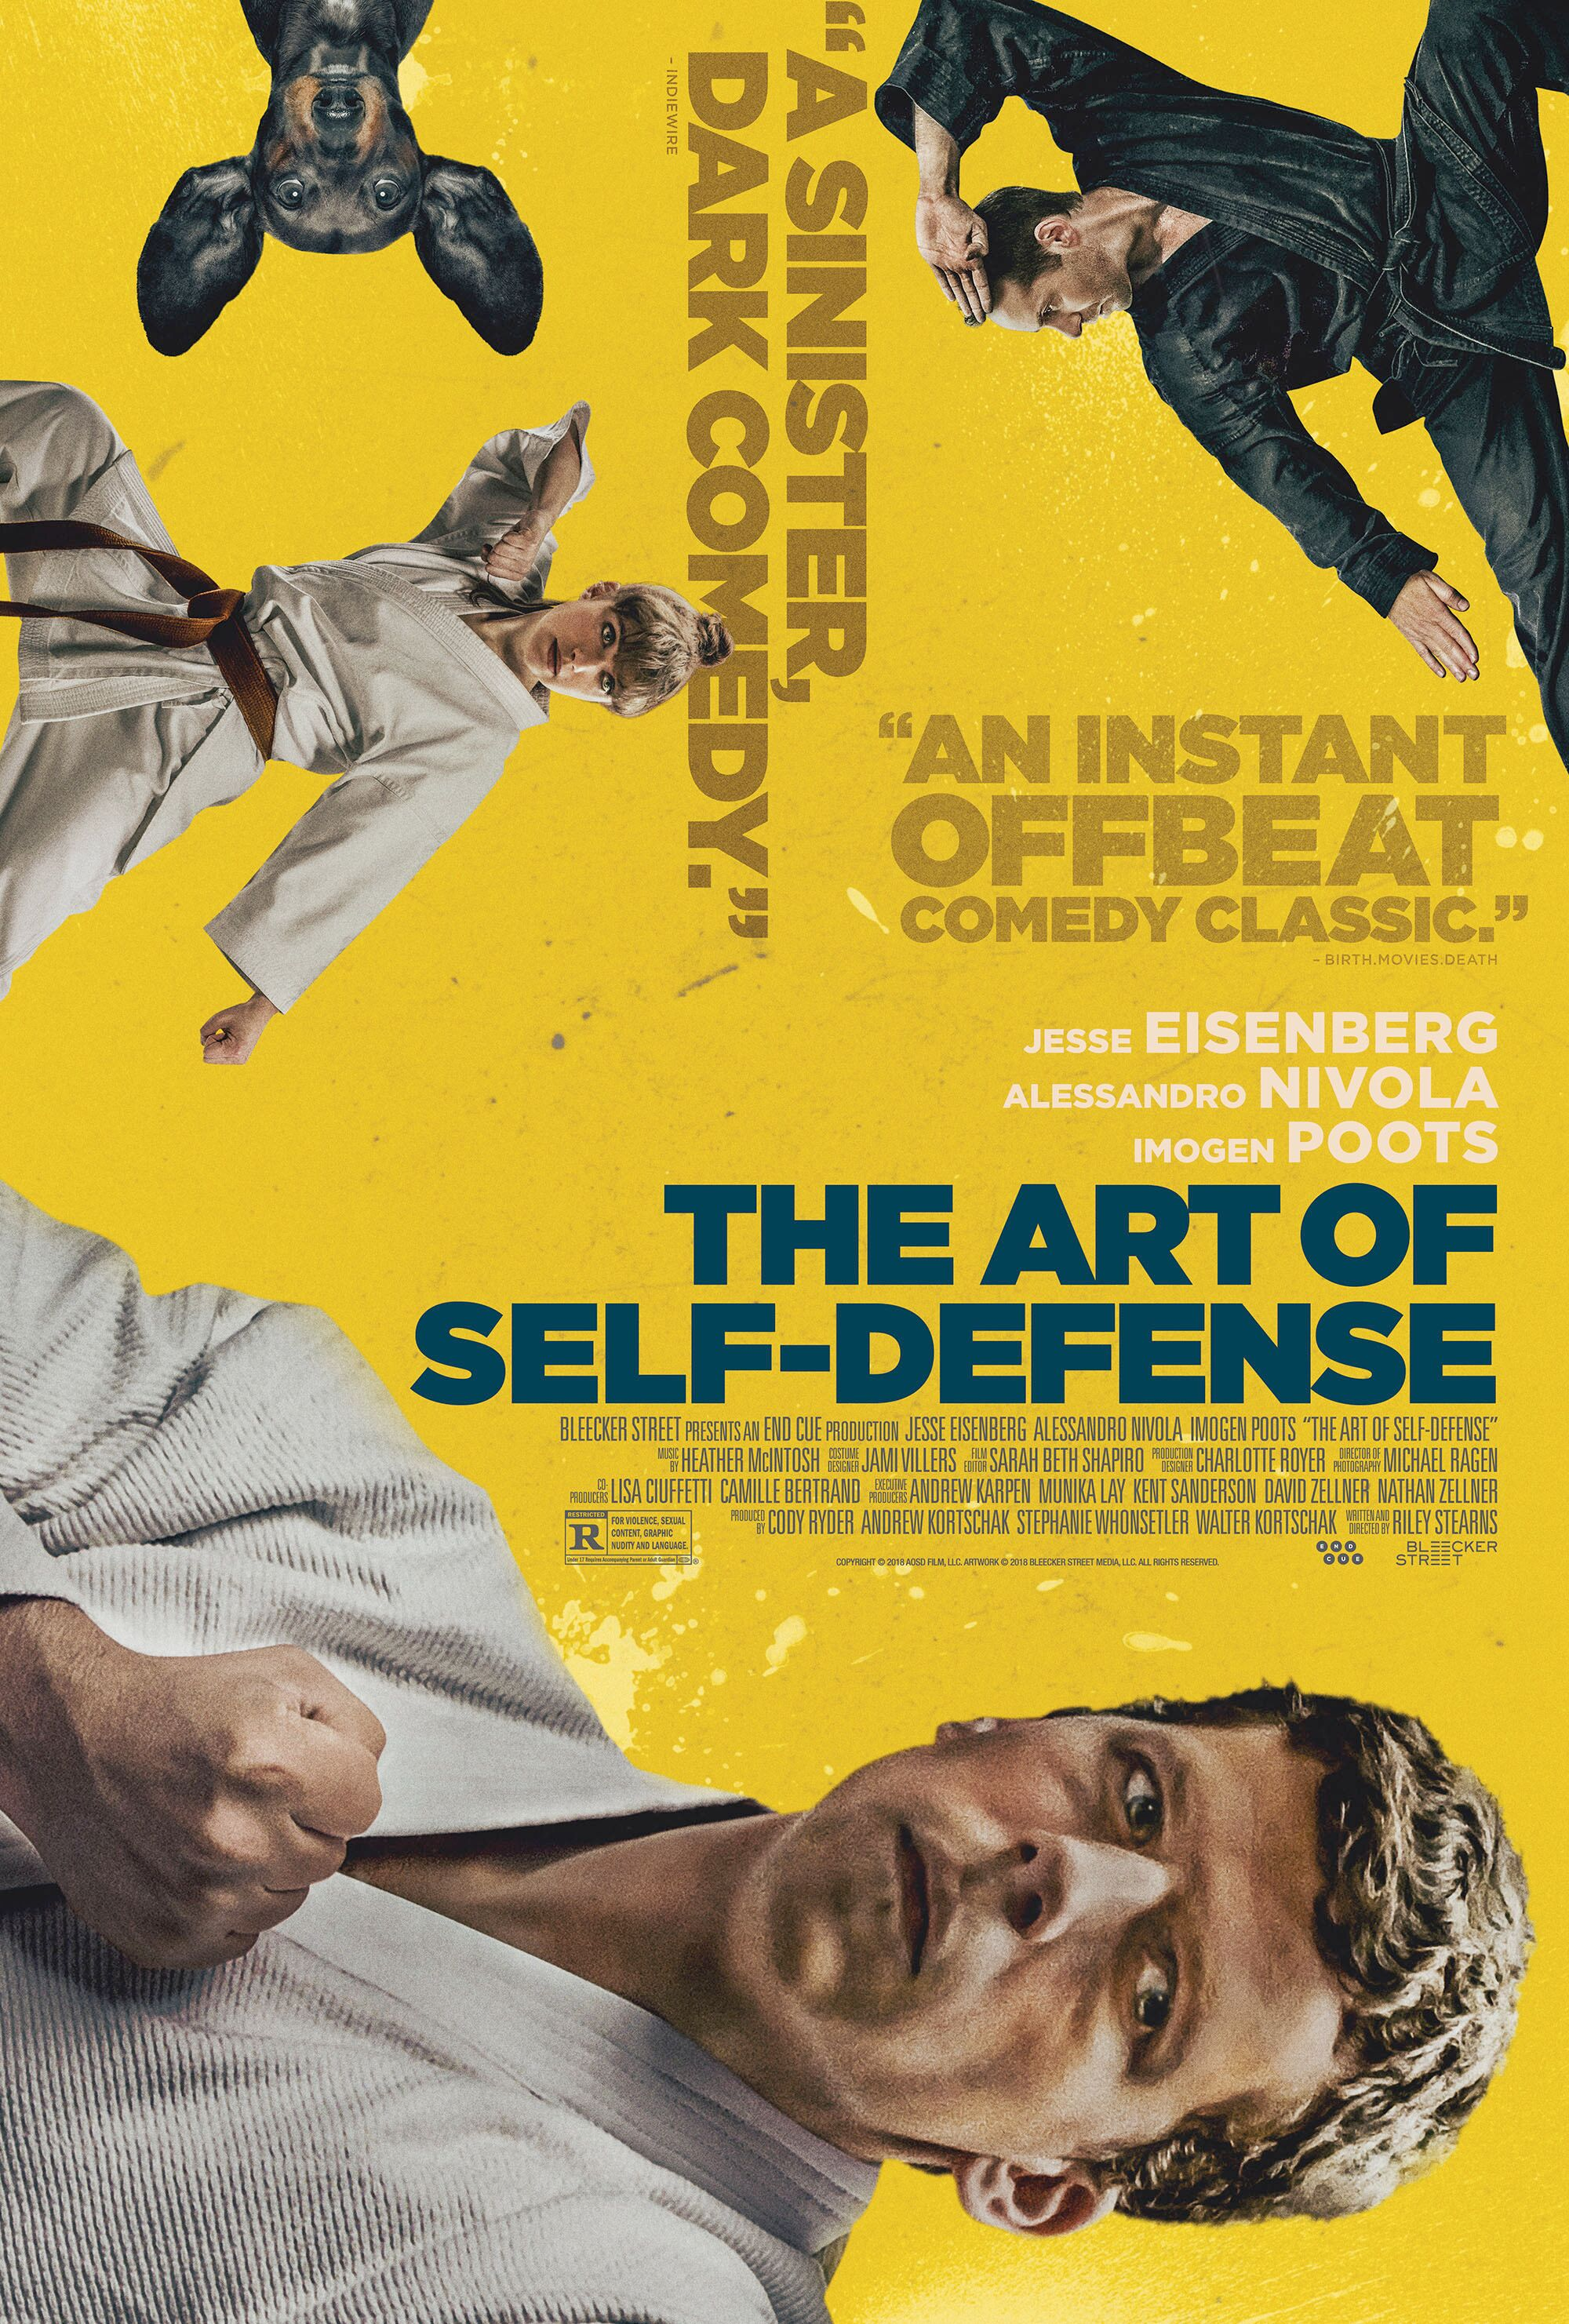 THE ART OF SELF-DEFENSE Poster.jpg